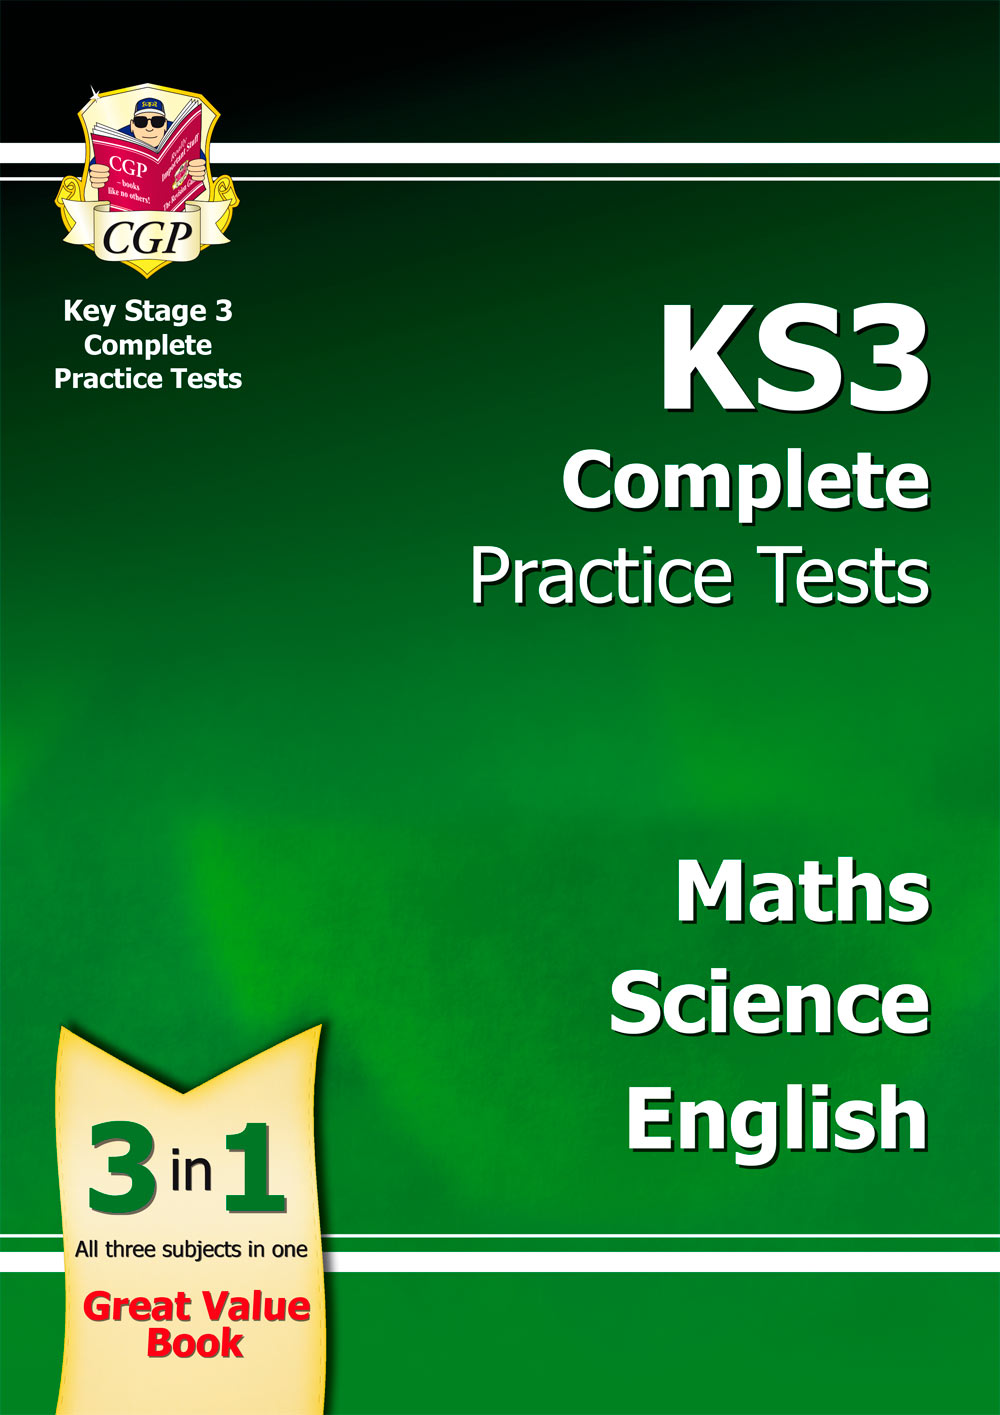 SMEB34 - KS3 Complete Practice Tests - Maths, Science & English